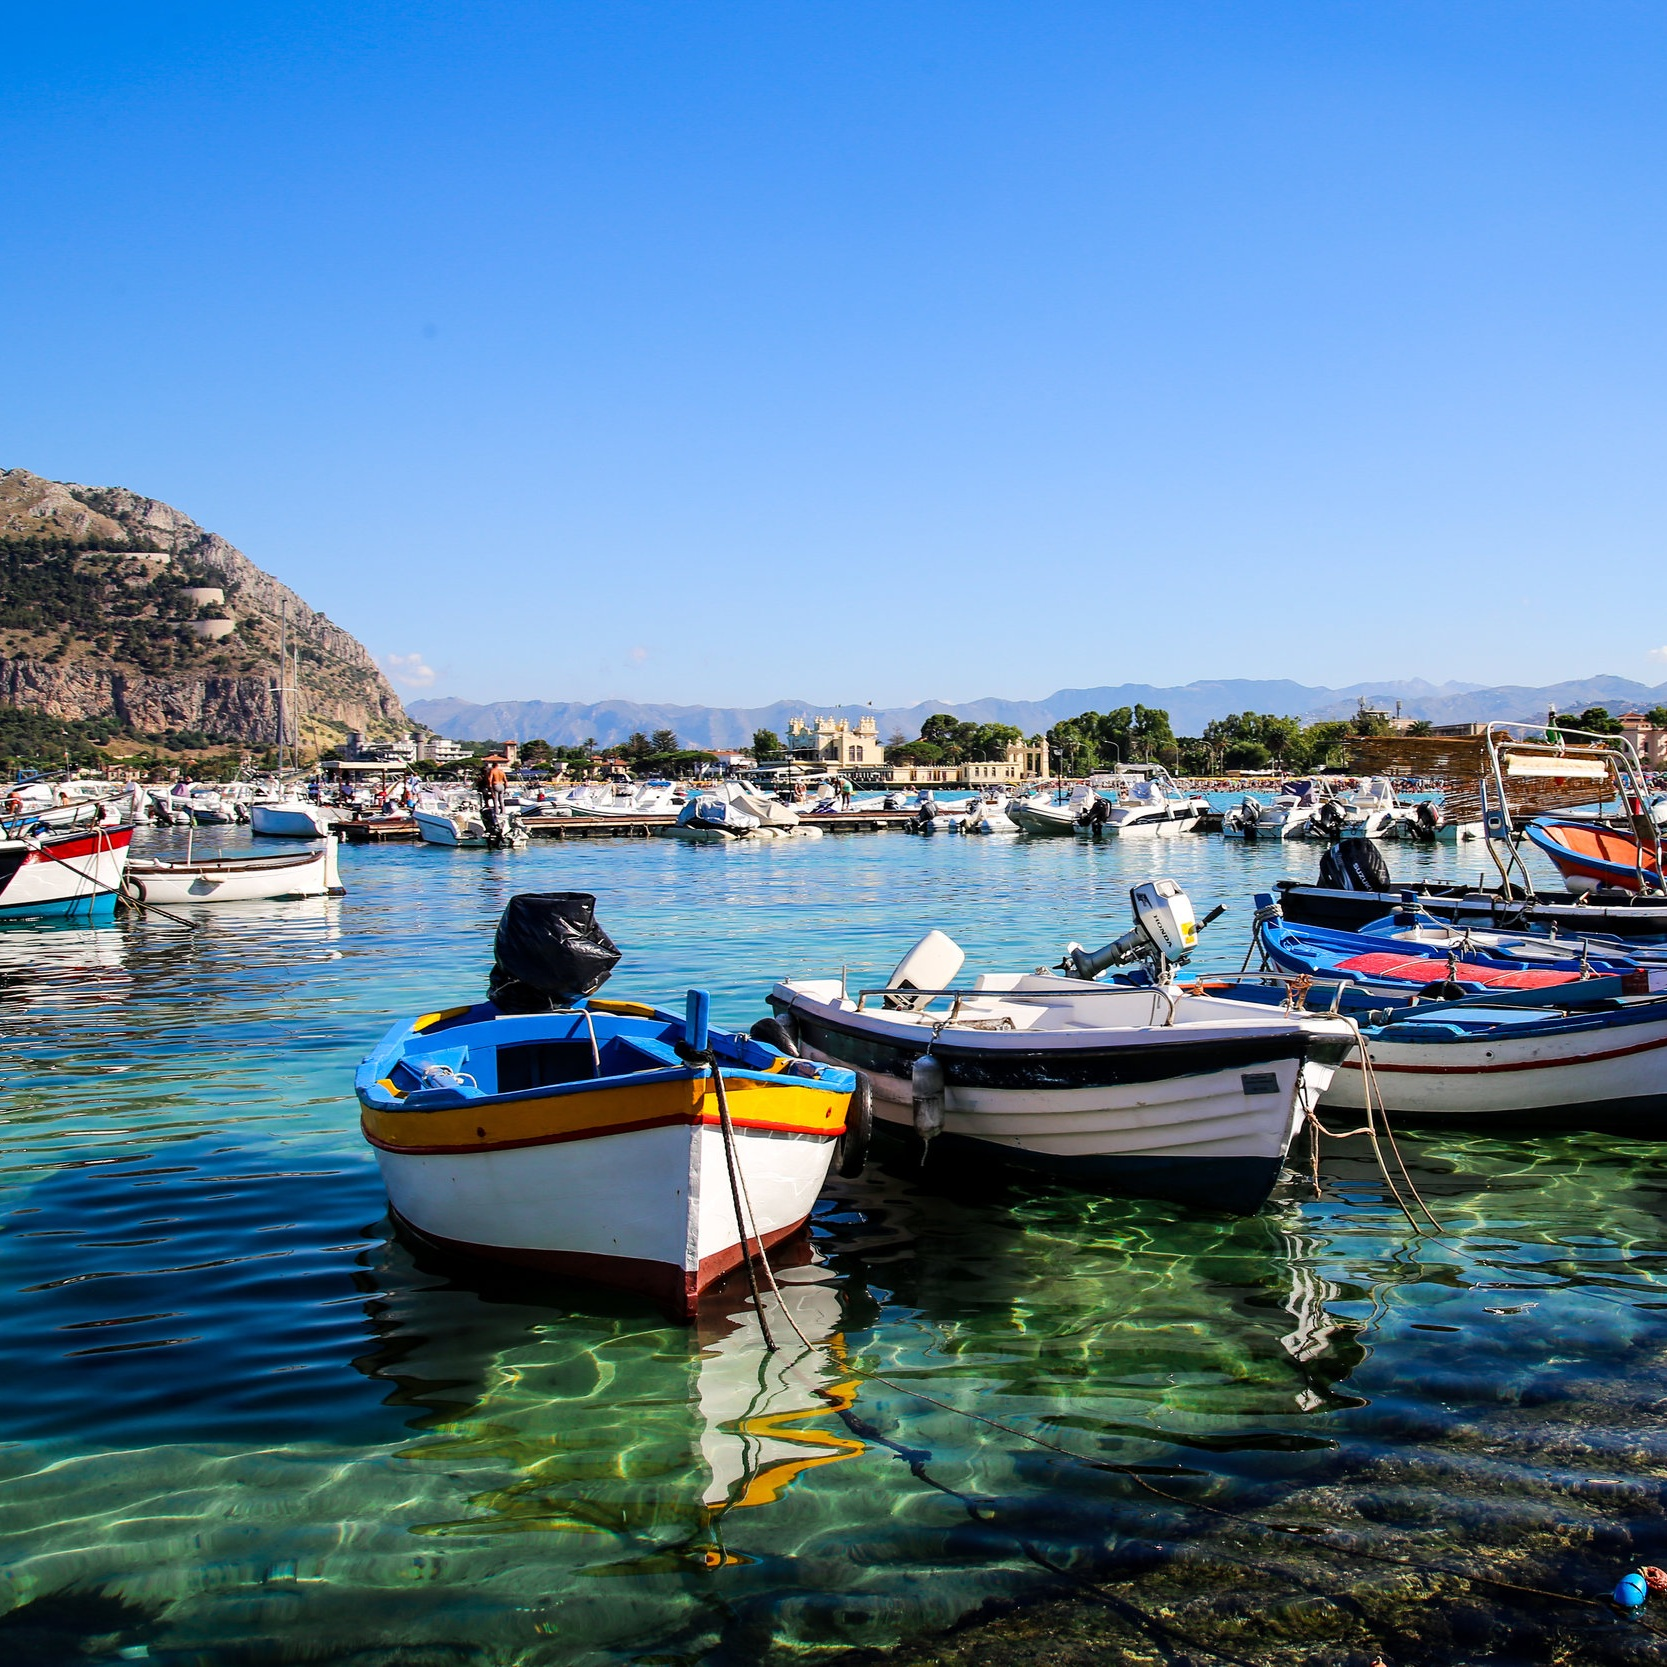 Sicilian harbor and boats